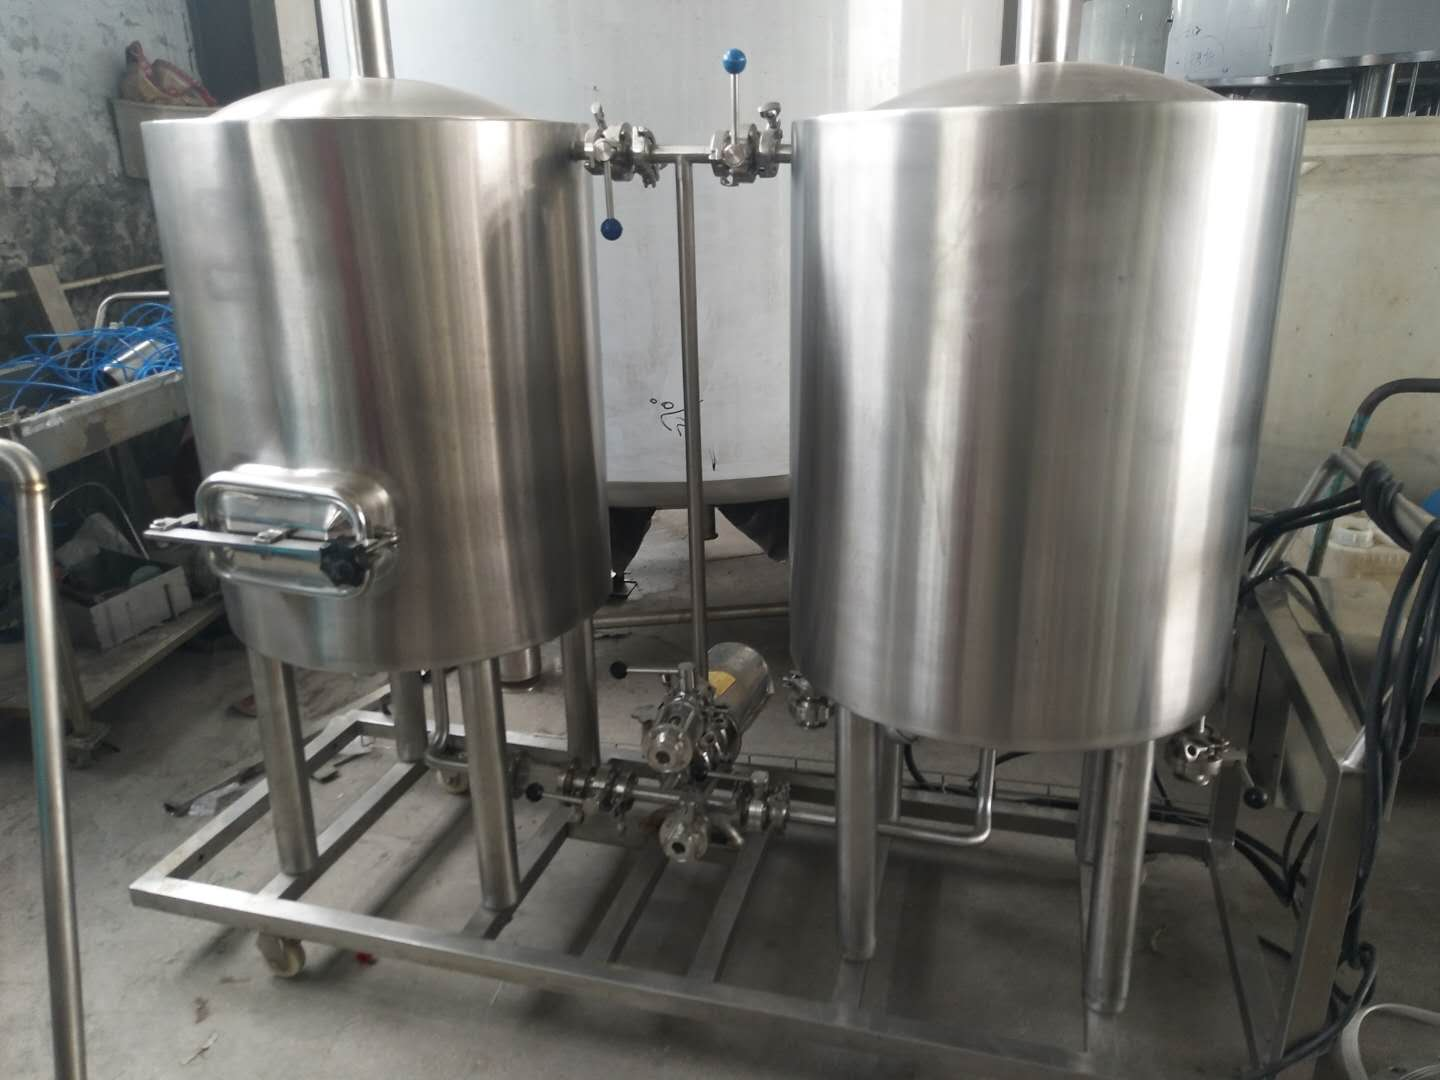 Belgium auto small size beer brewing equipment of Stainless steel from China factory 2020 W1